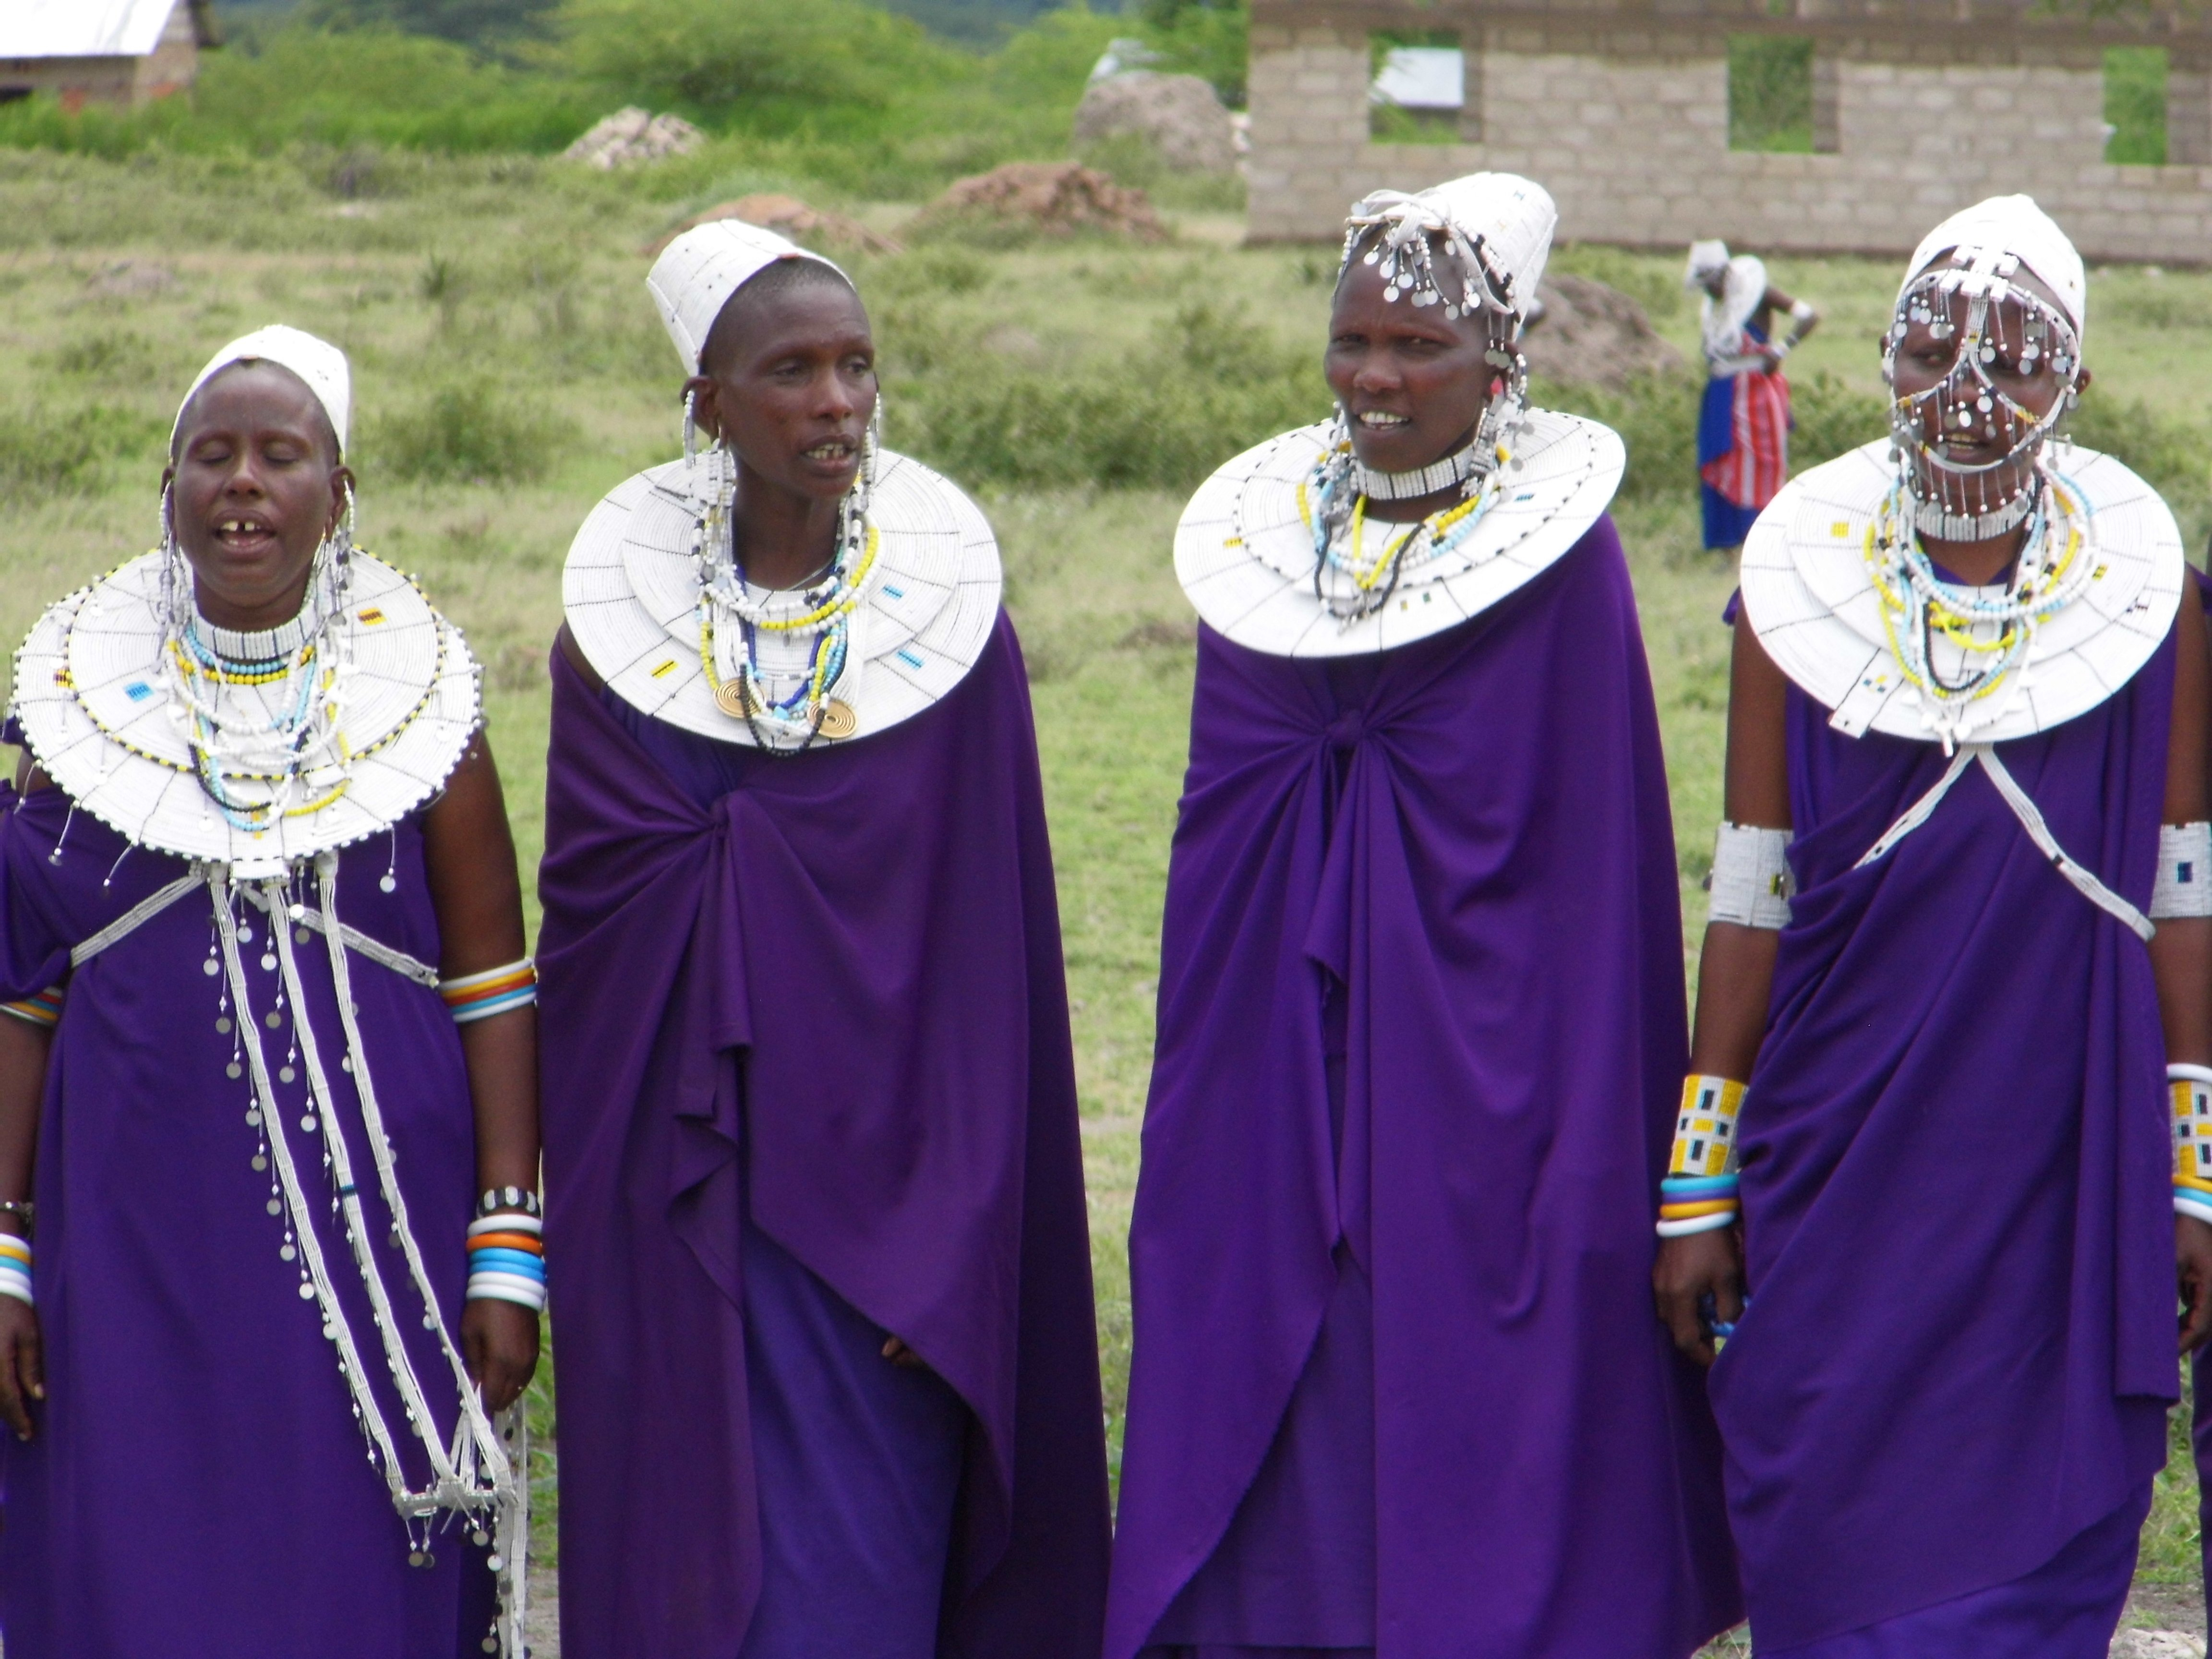 Masai women in jewellery